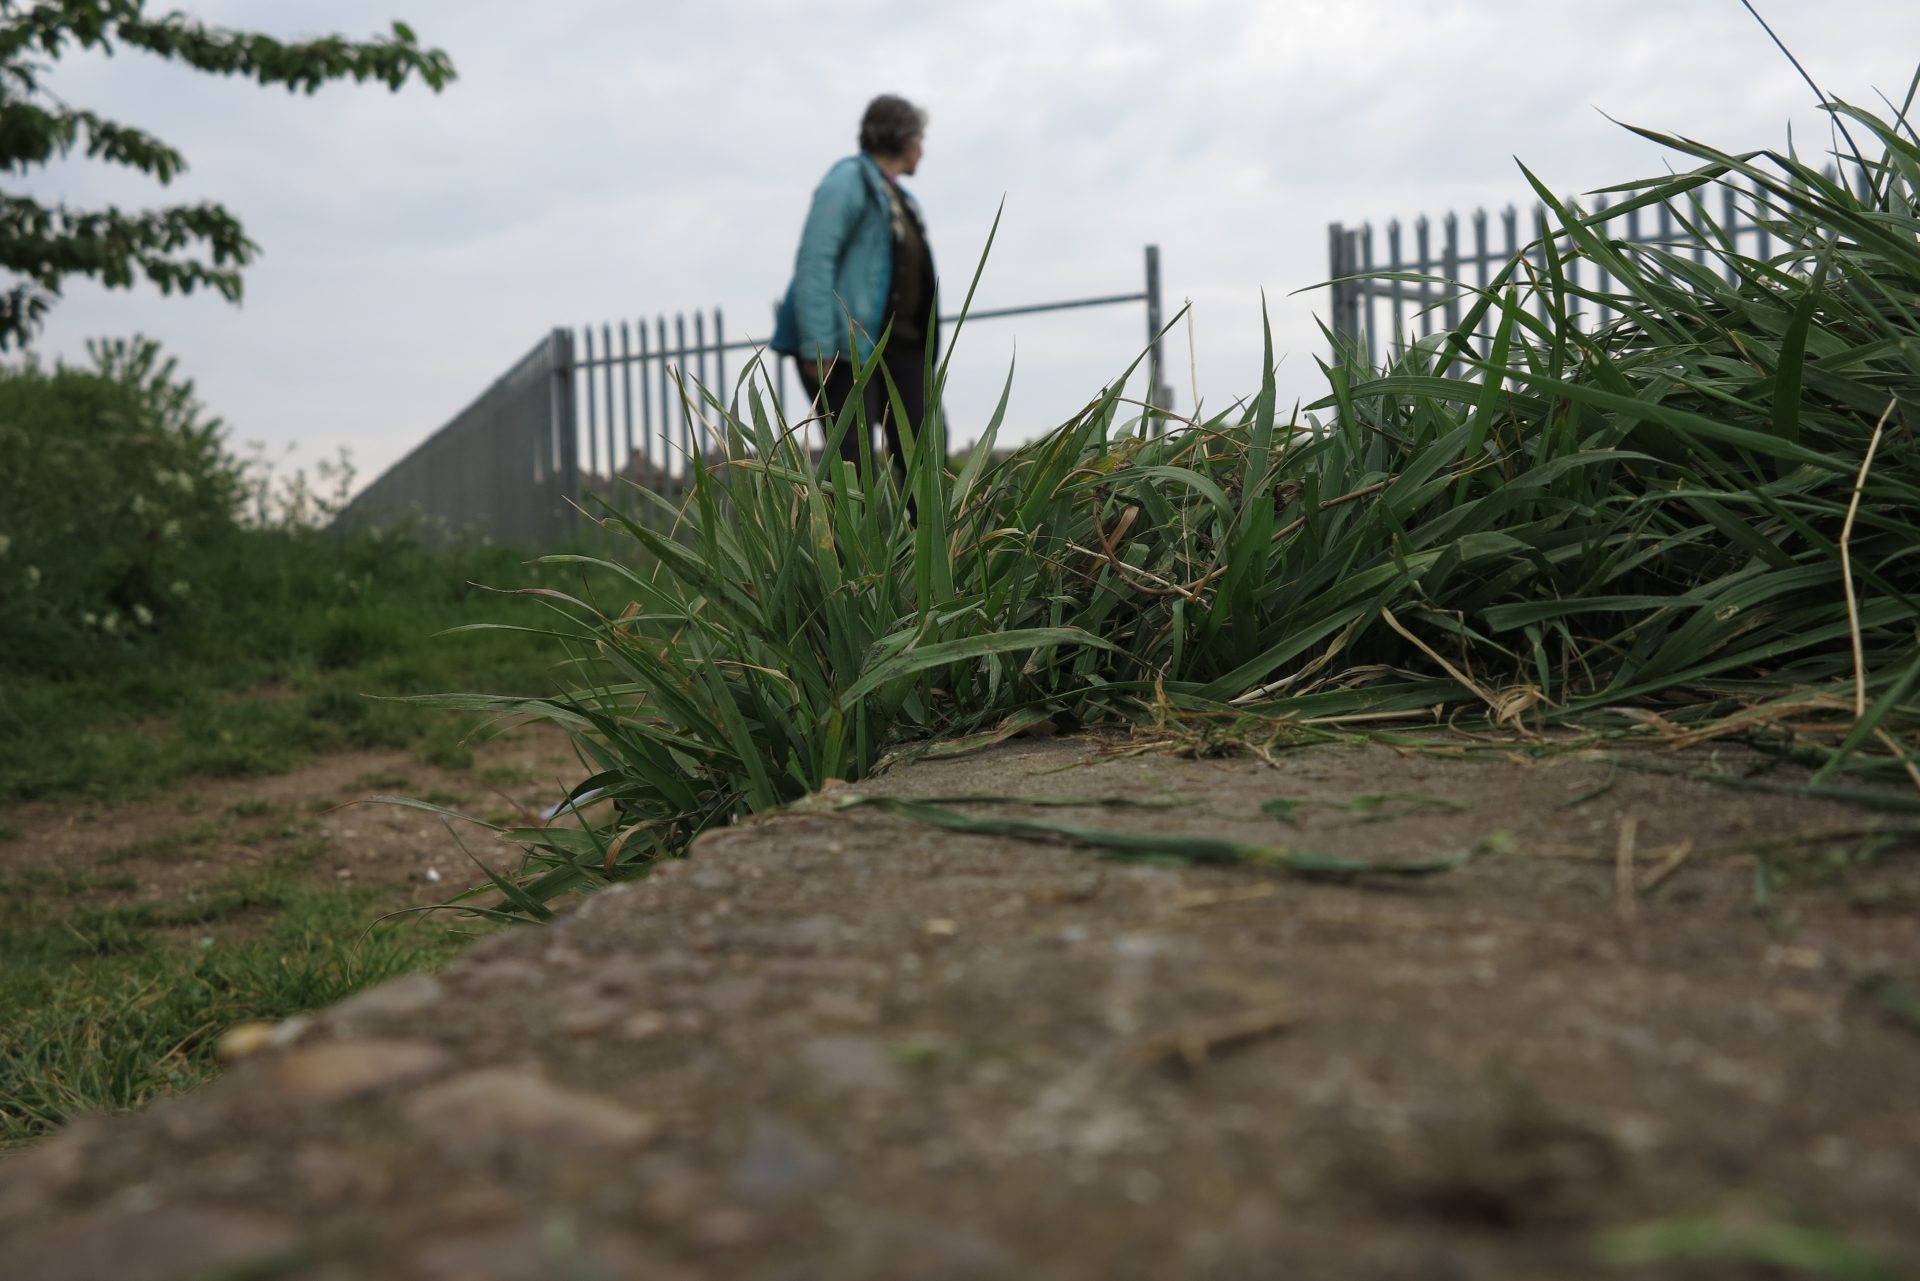 The foreground of the photograph concentrates on a concrete step with grasses growing up between the cracks in the ground. In the background and top half of the photograph there is a figure looking away from the camera towards a gap in a tall metal fence. The sky is overcast and grey the figure is wearing a pale blue jacket.